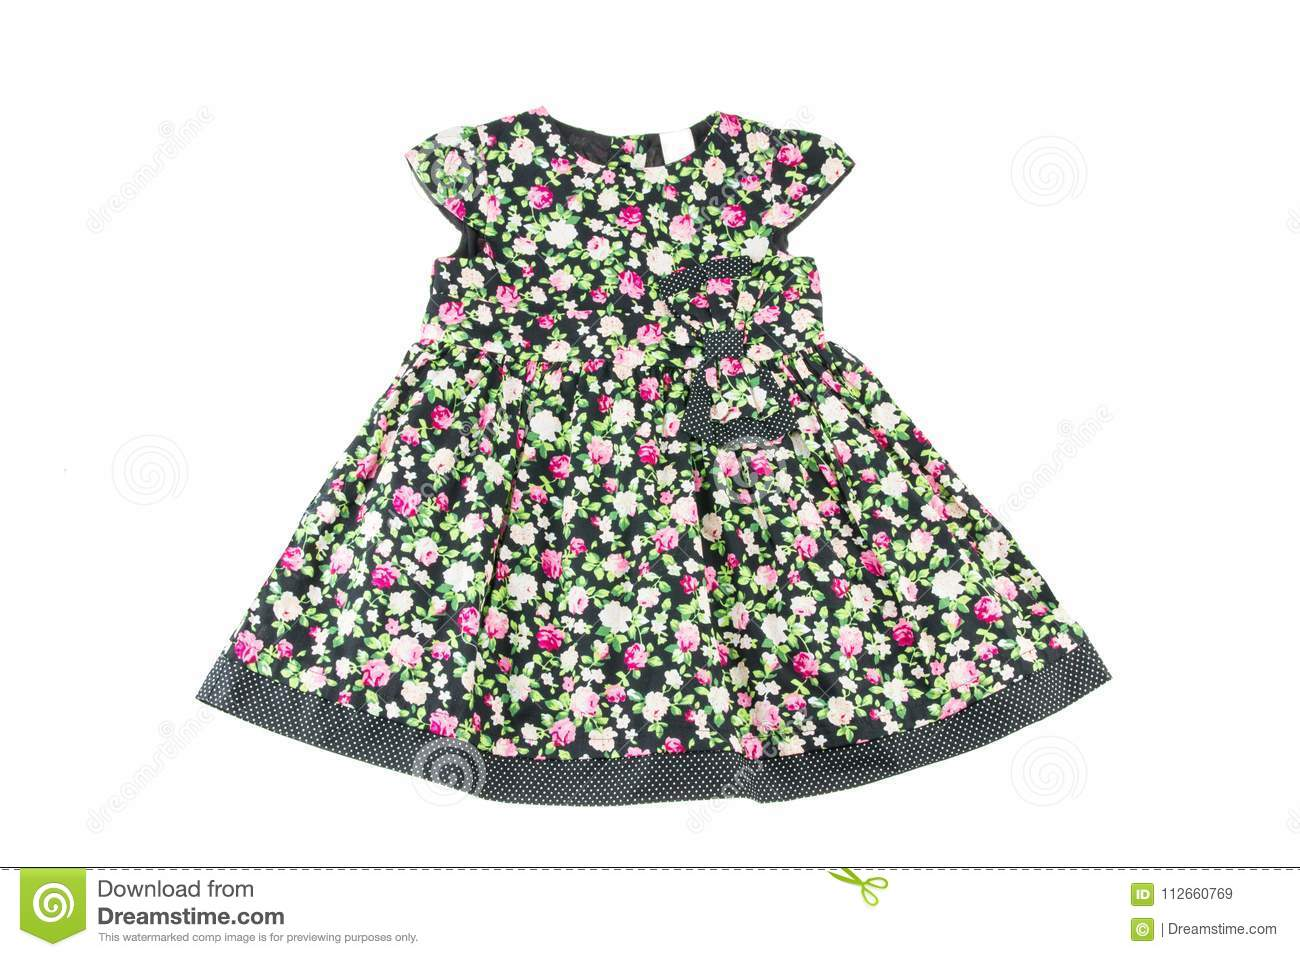 Fashionable little girl dress. Beauty and style in children`s clothes. Isolated on white background